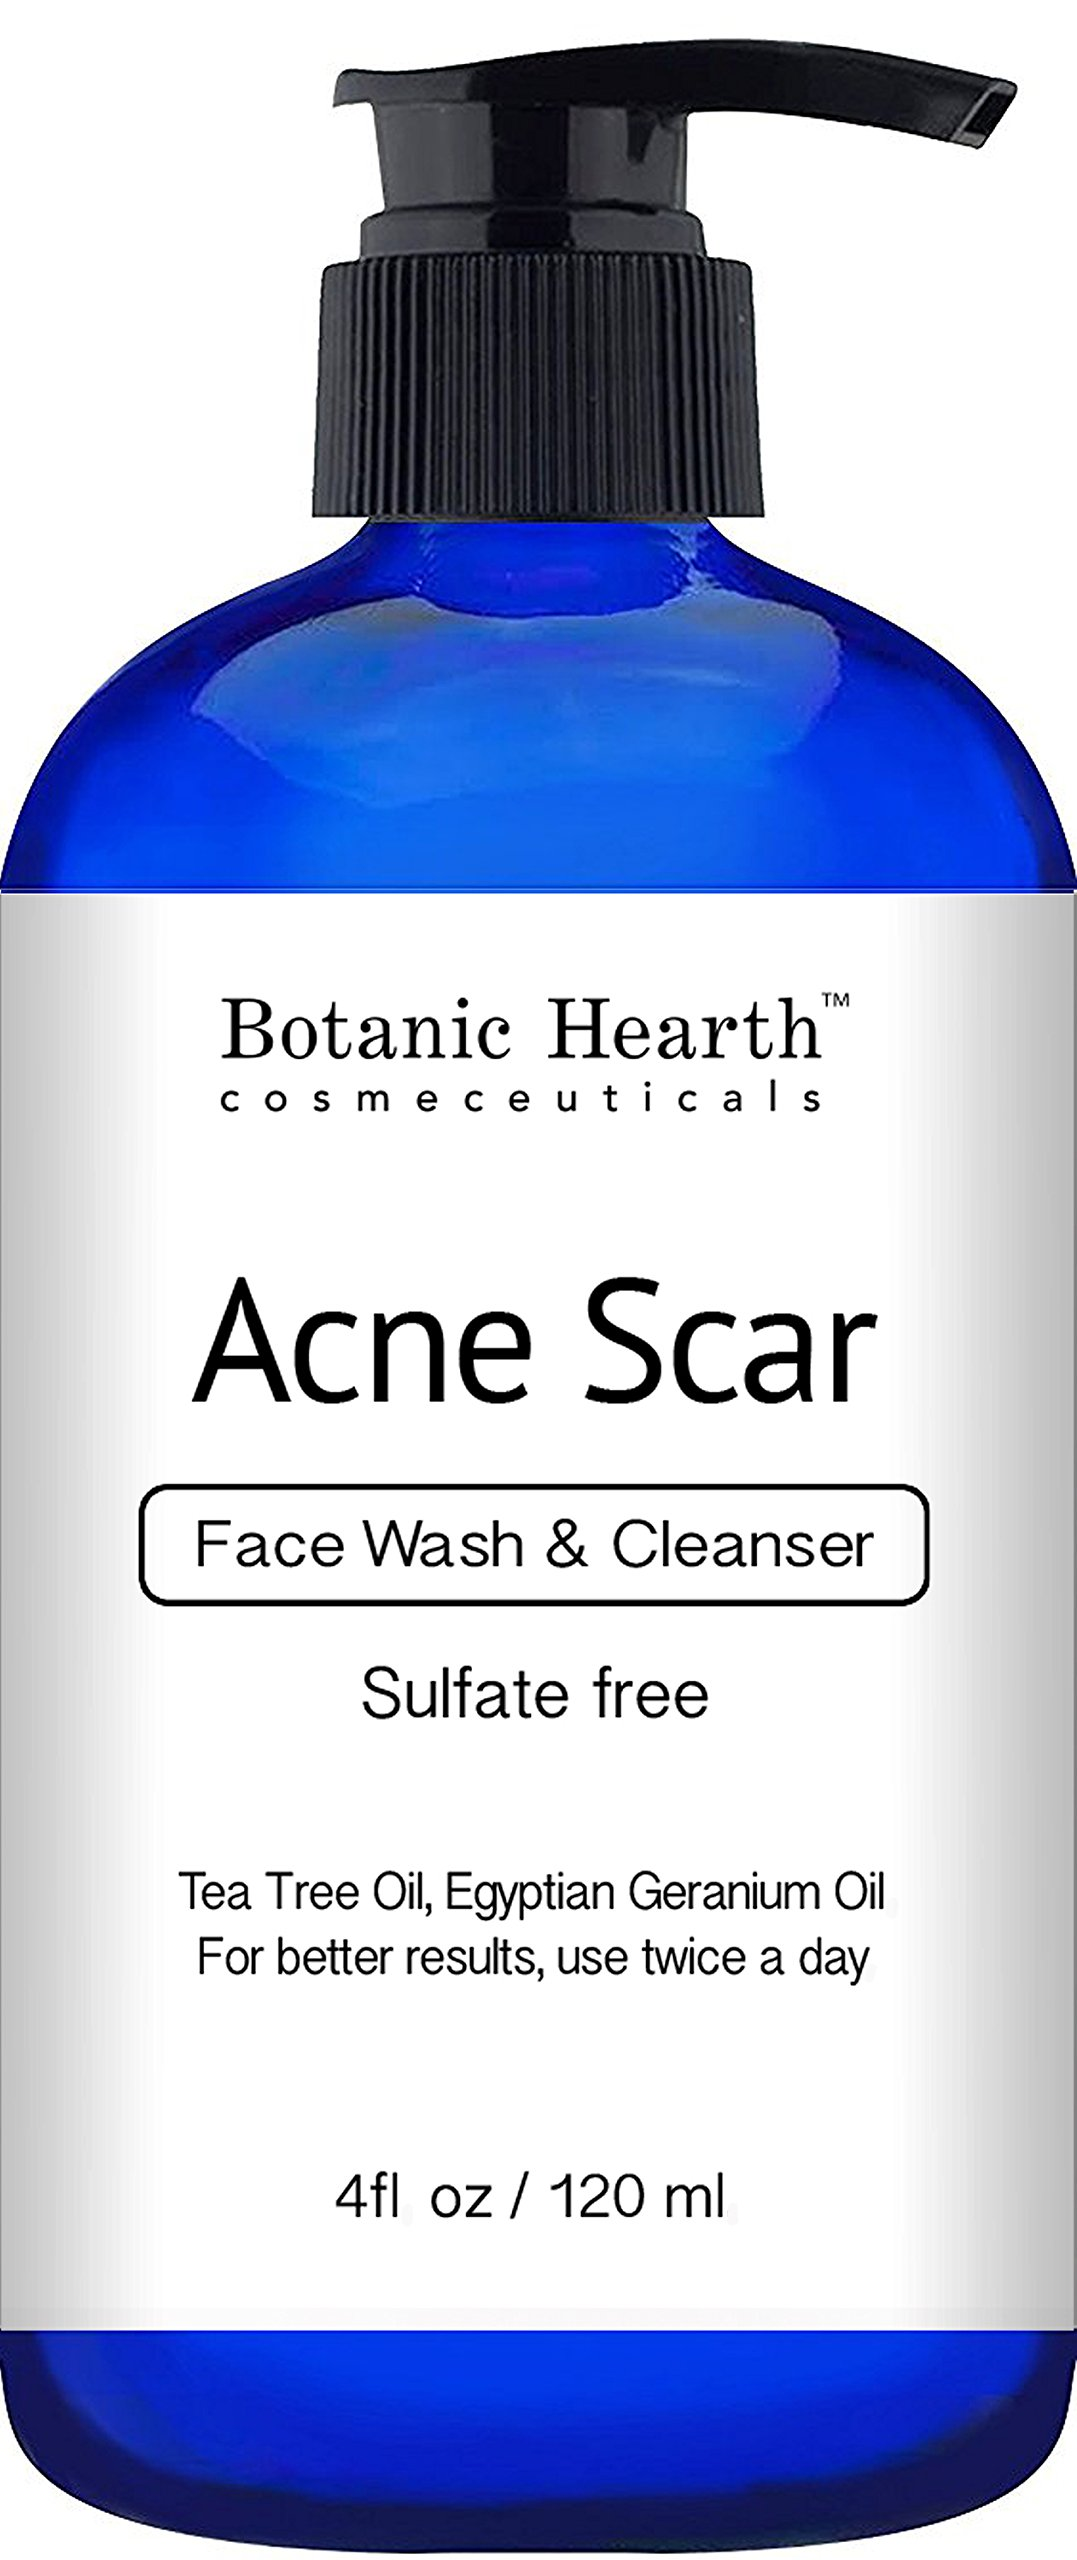 Botanic Hearth Acne Scar Wash, Sulfate Free, Reduces the Appearance of Scars and Hyperpigmentation, for Face and Body, 4 fl oz